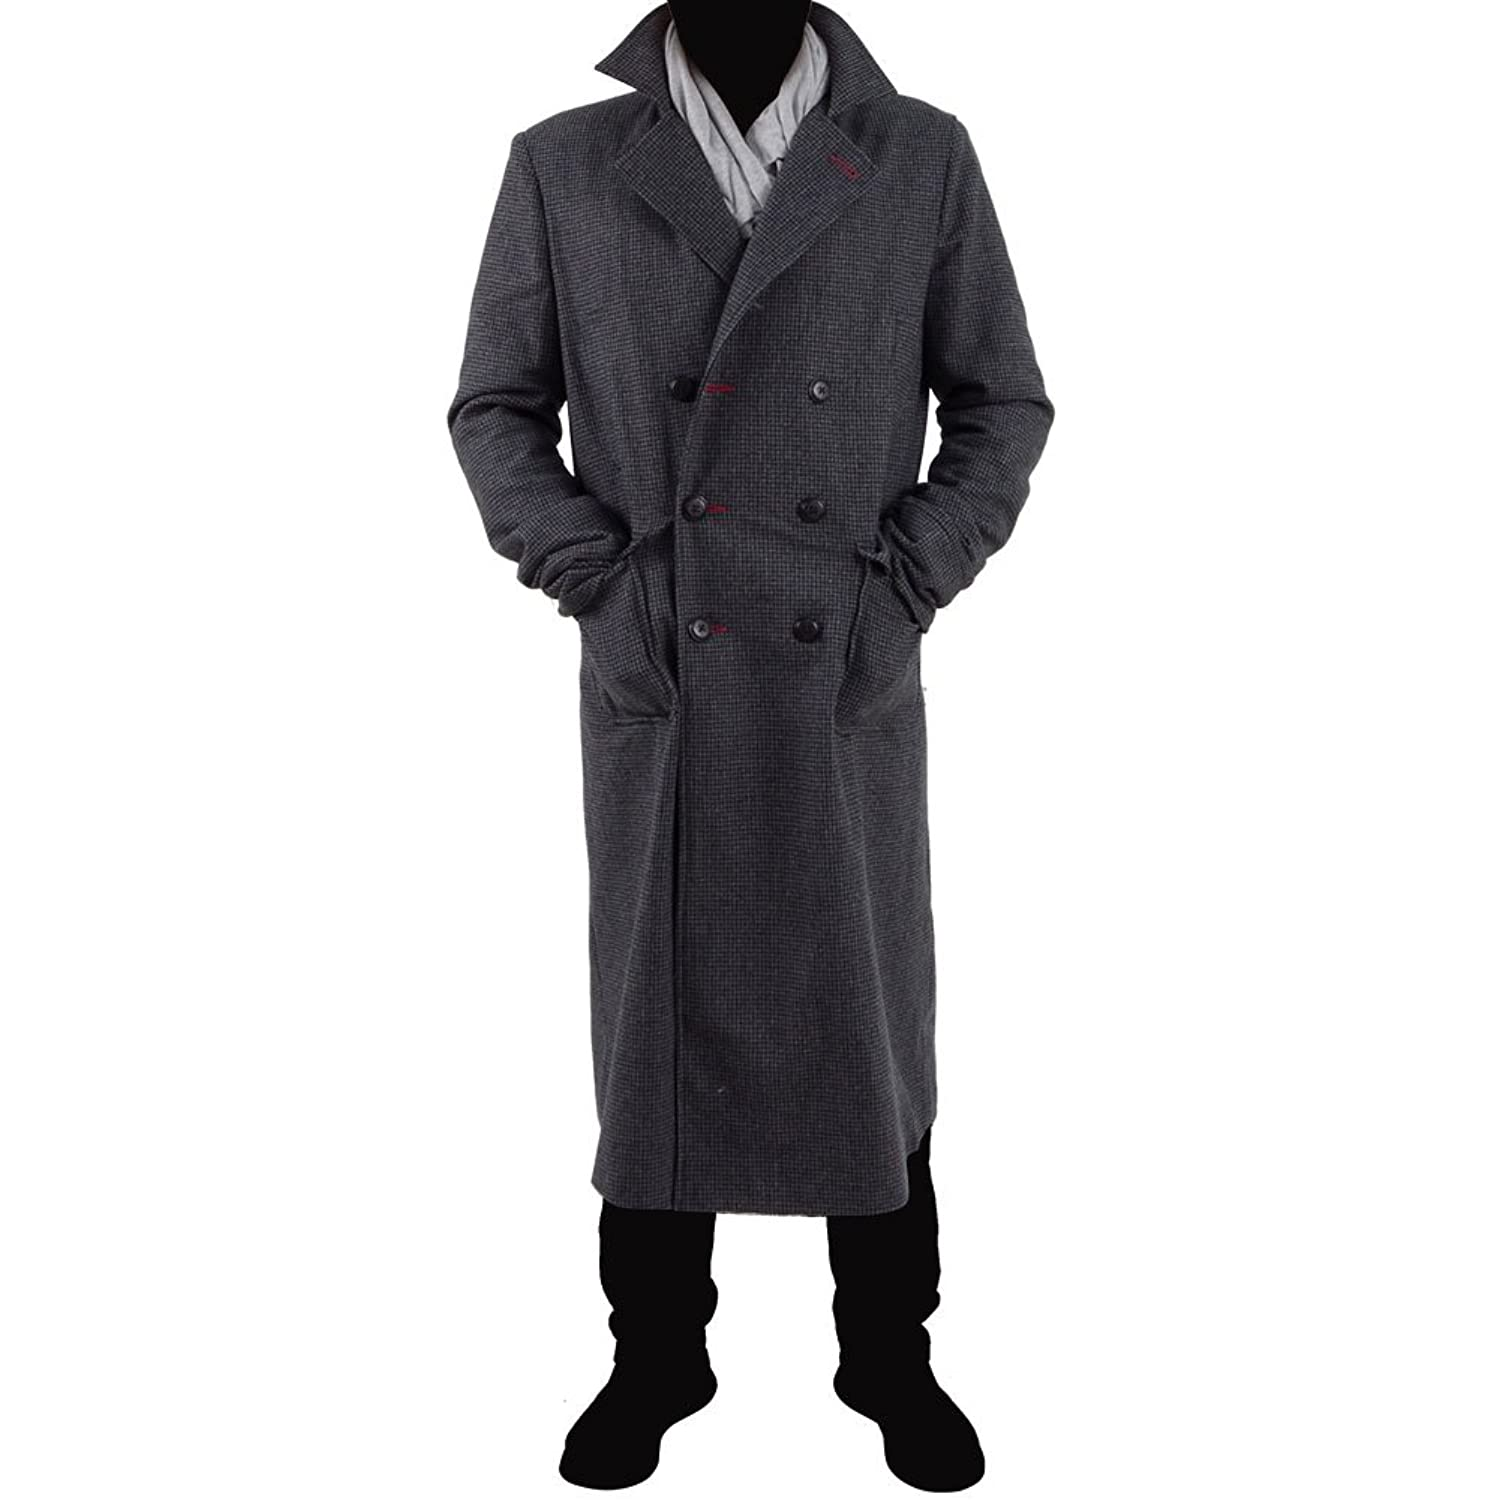 Men's Swing Dance Clothing to Keep You Cool Mens Plaids And Tweeds Long Trench Coat Halloween Cosplay Costume Overcoat $100.00 AT vintagedancer.com